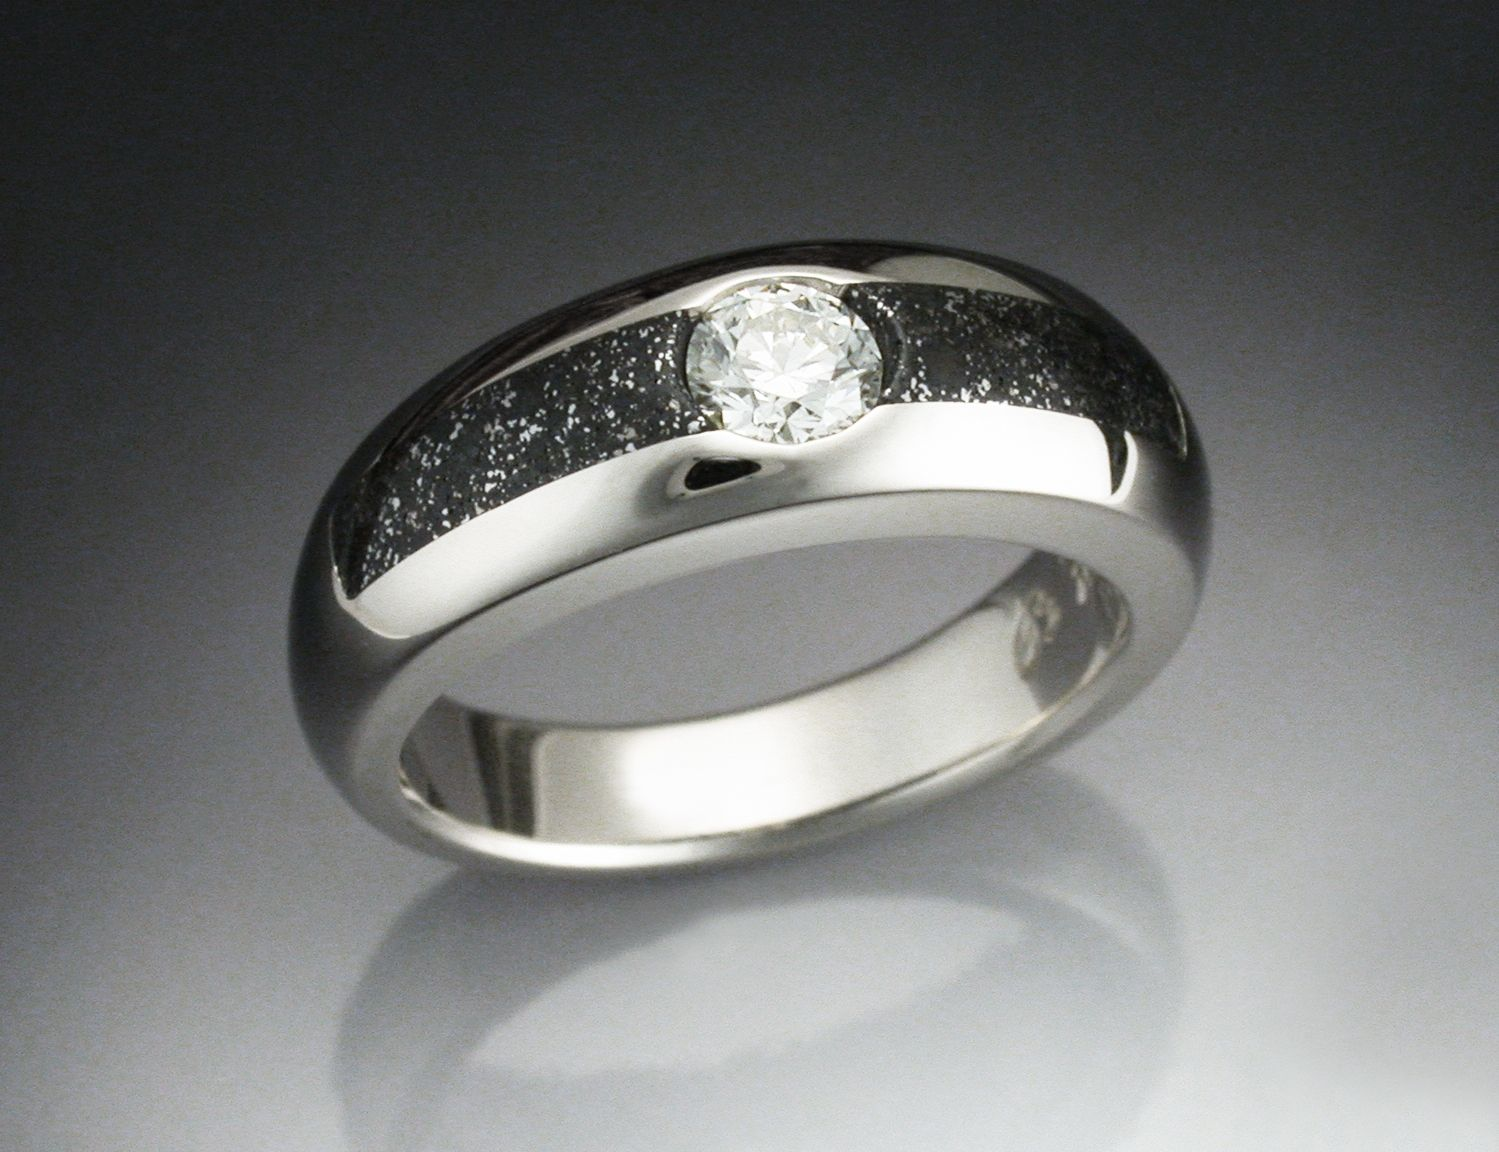 The Nine Planets Ring Jewelry - Pics about space